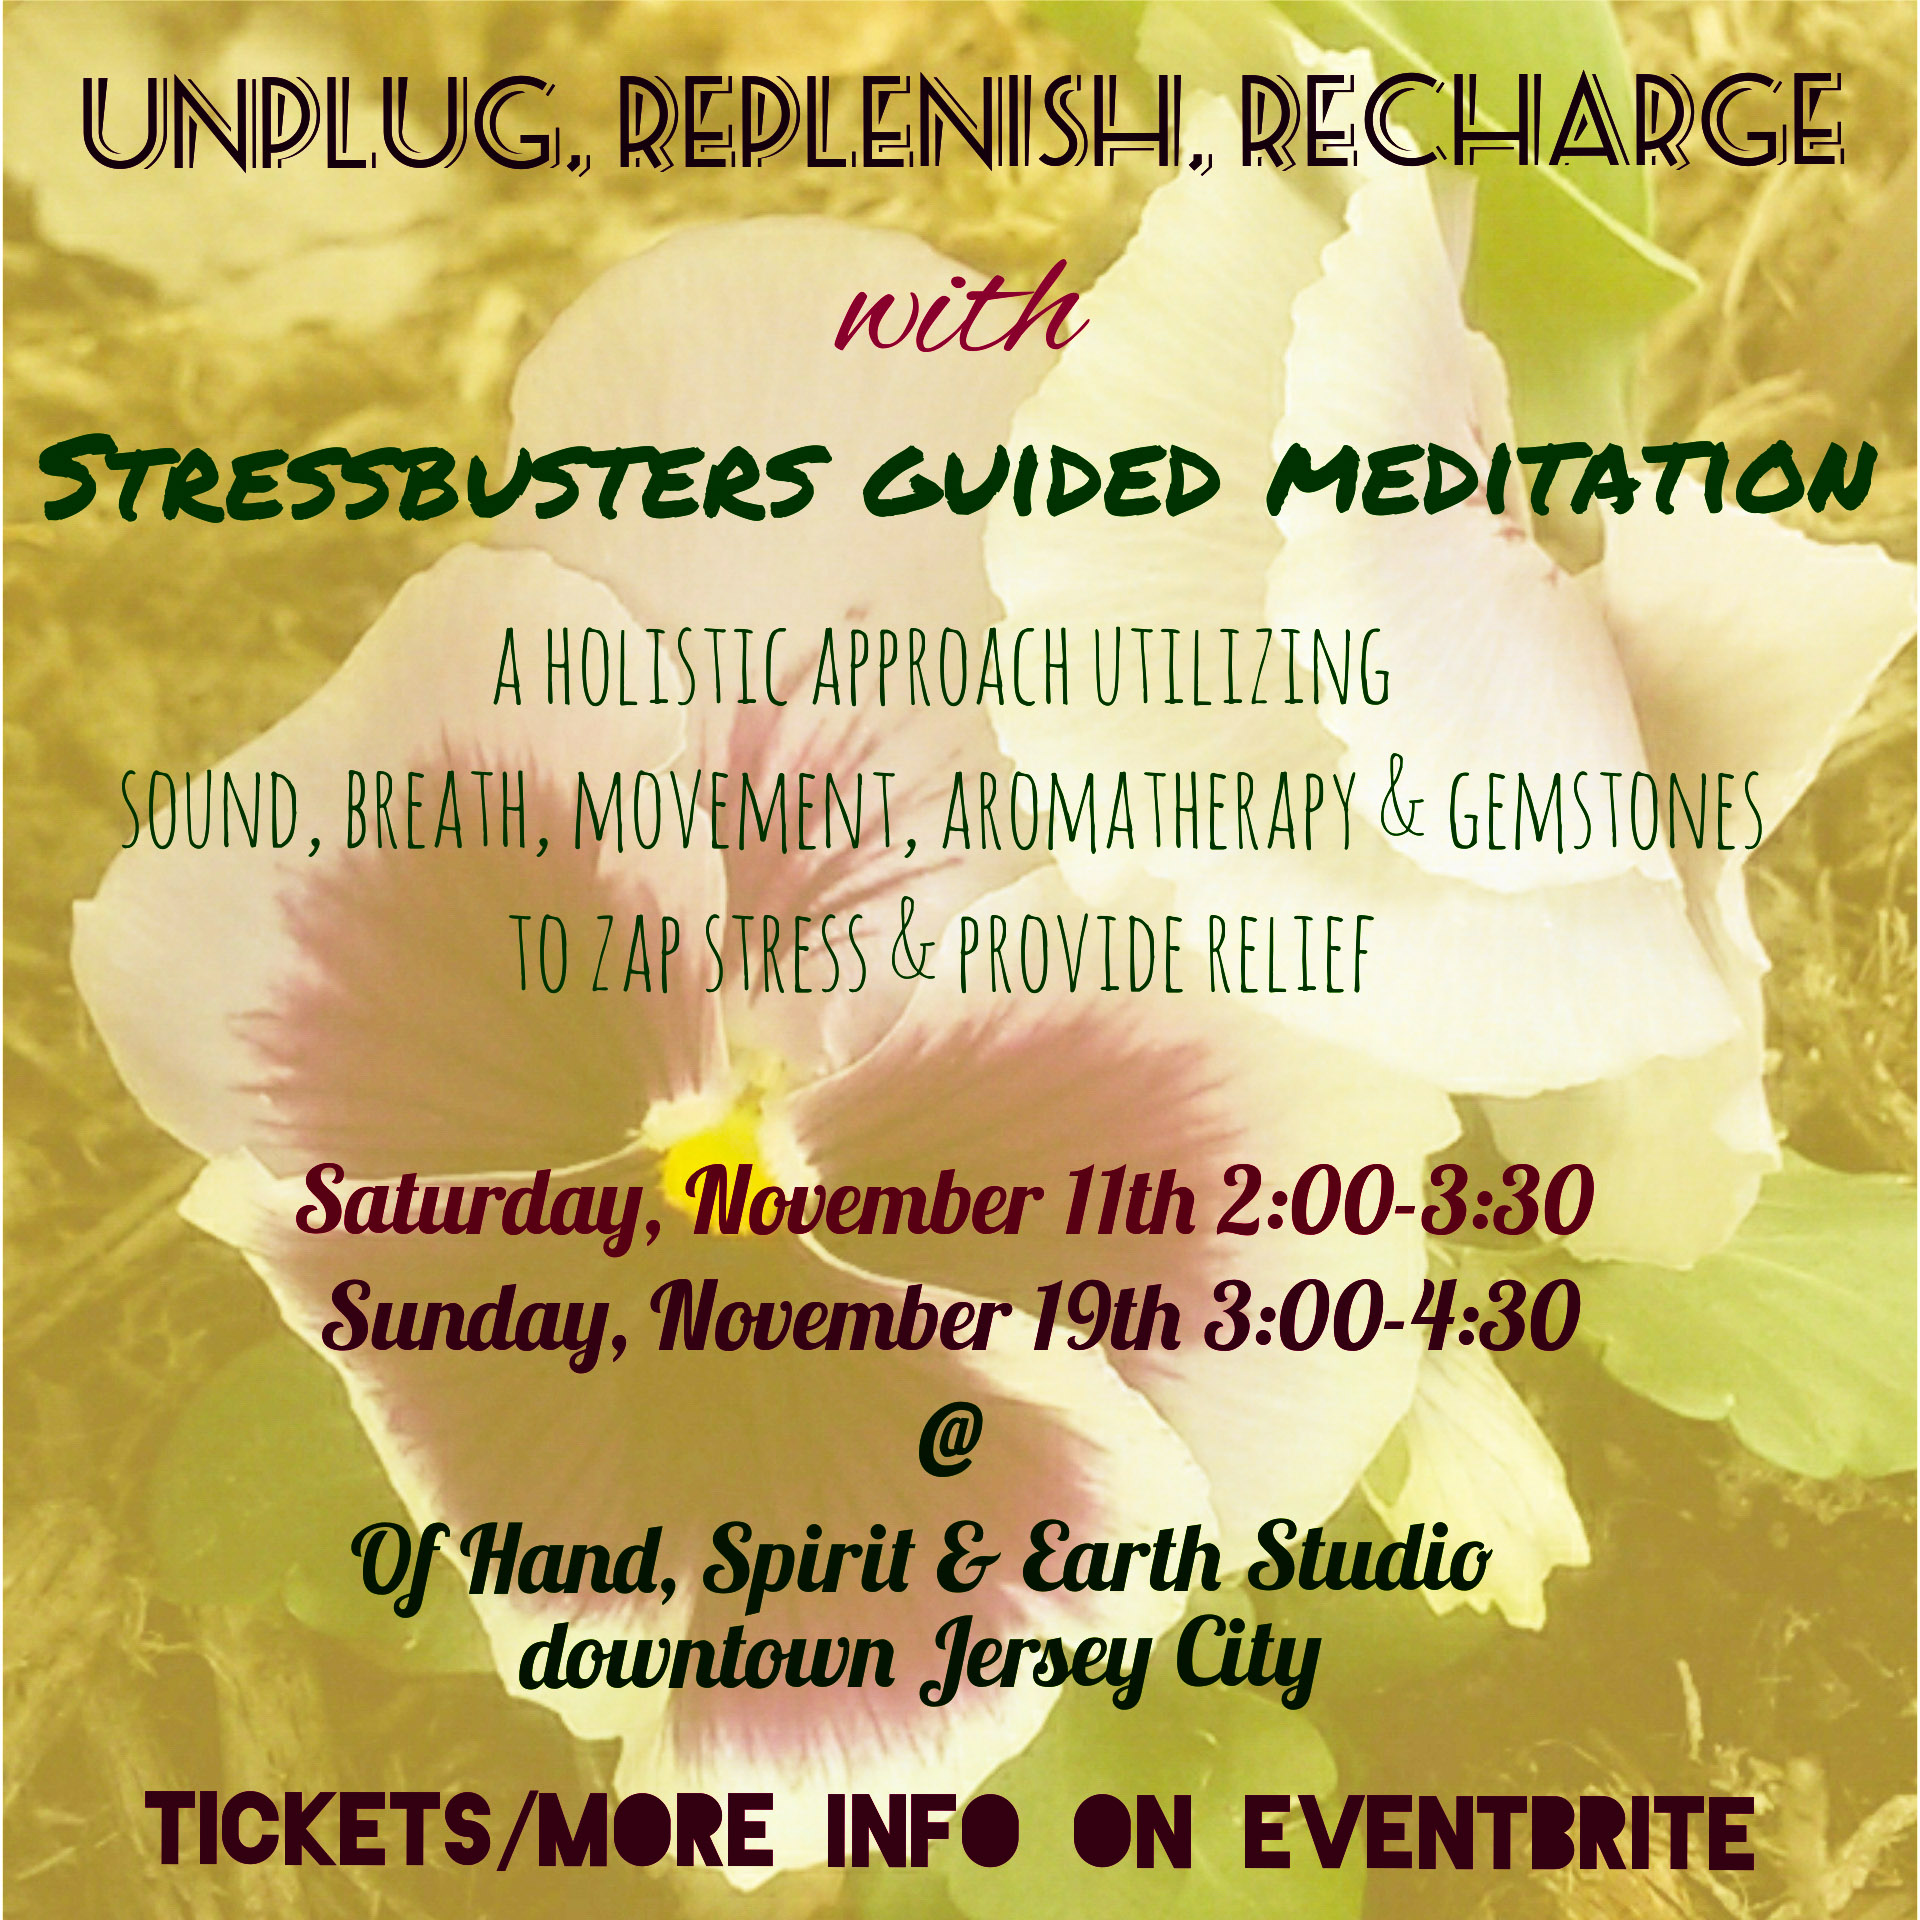 StressBusters Guided Meditation flyer